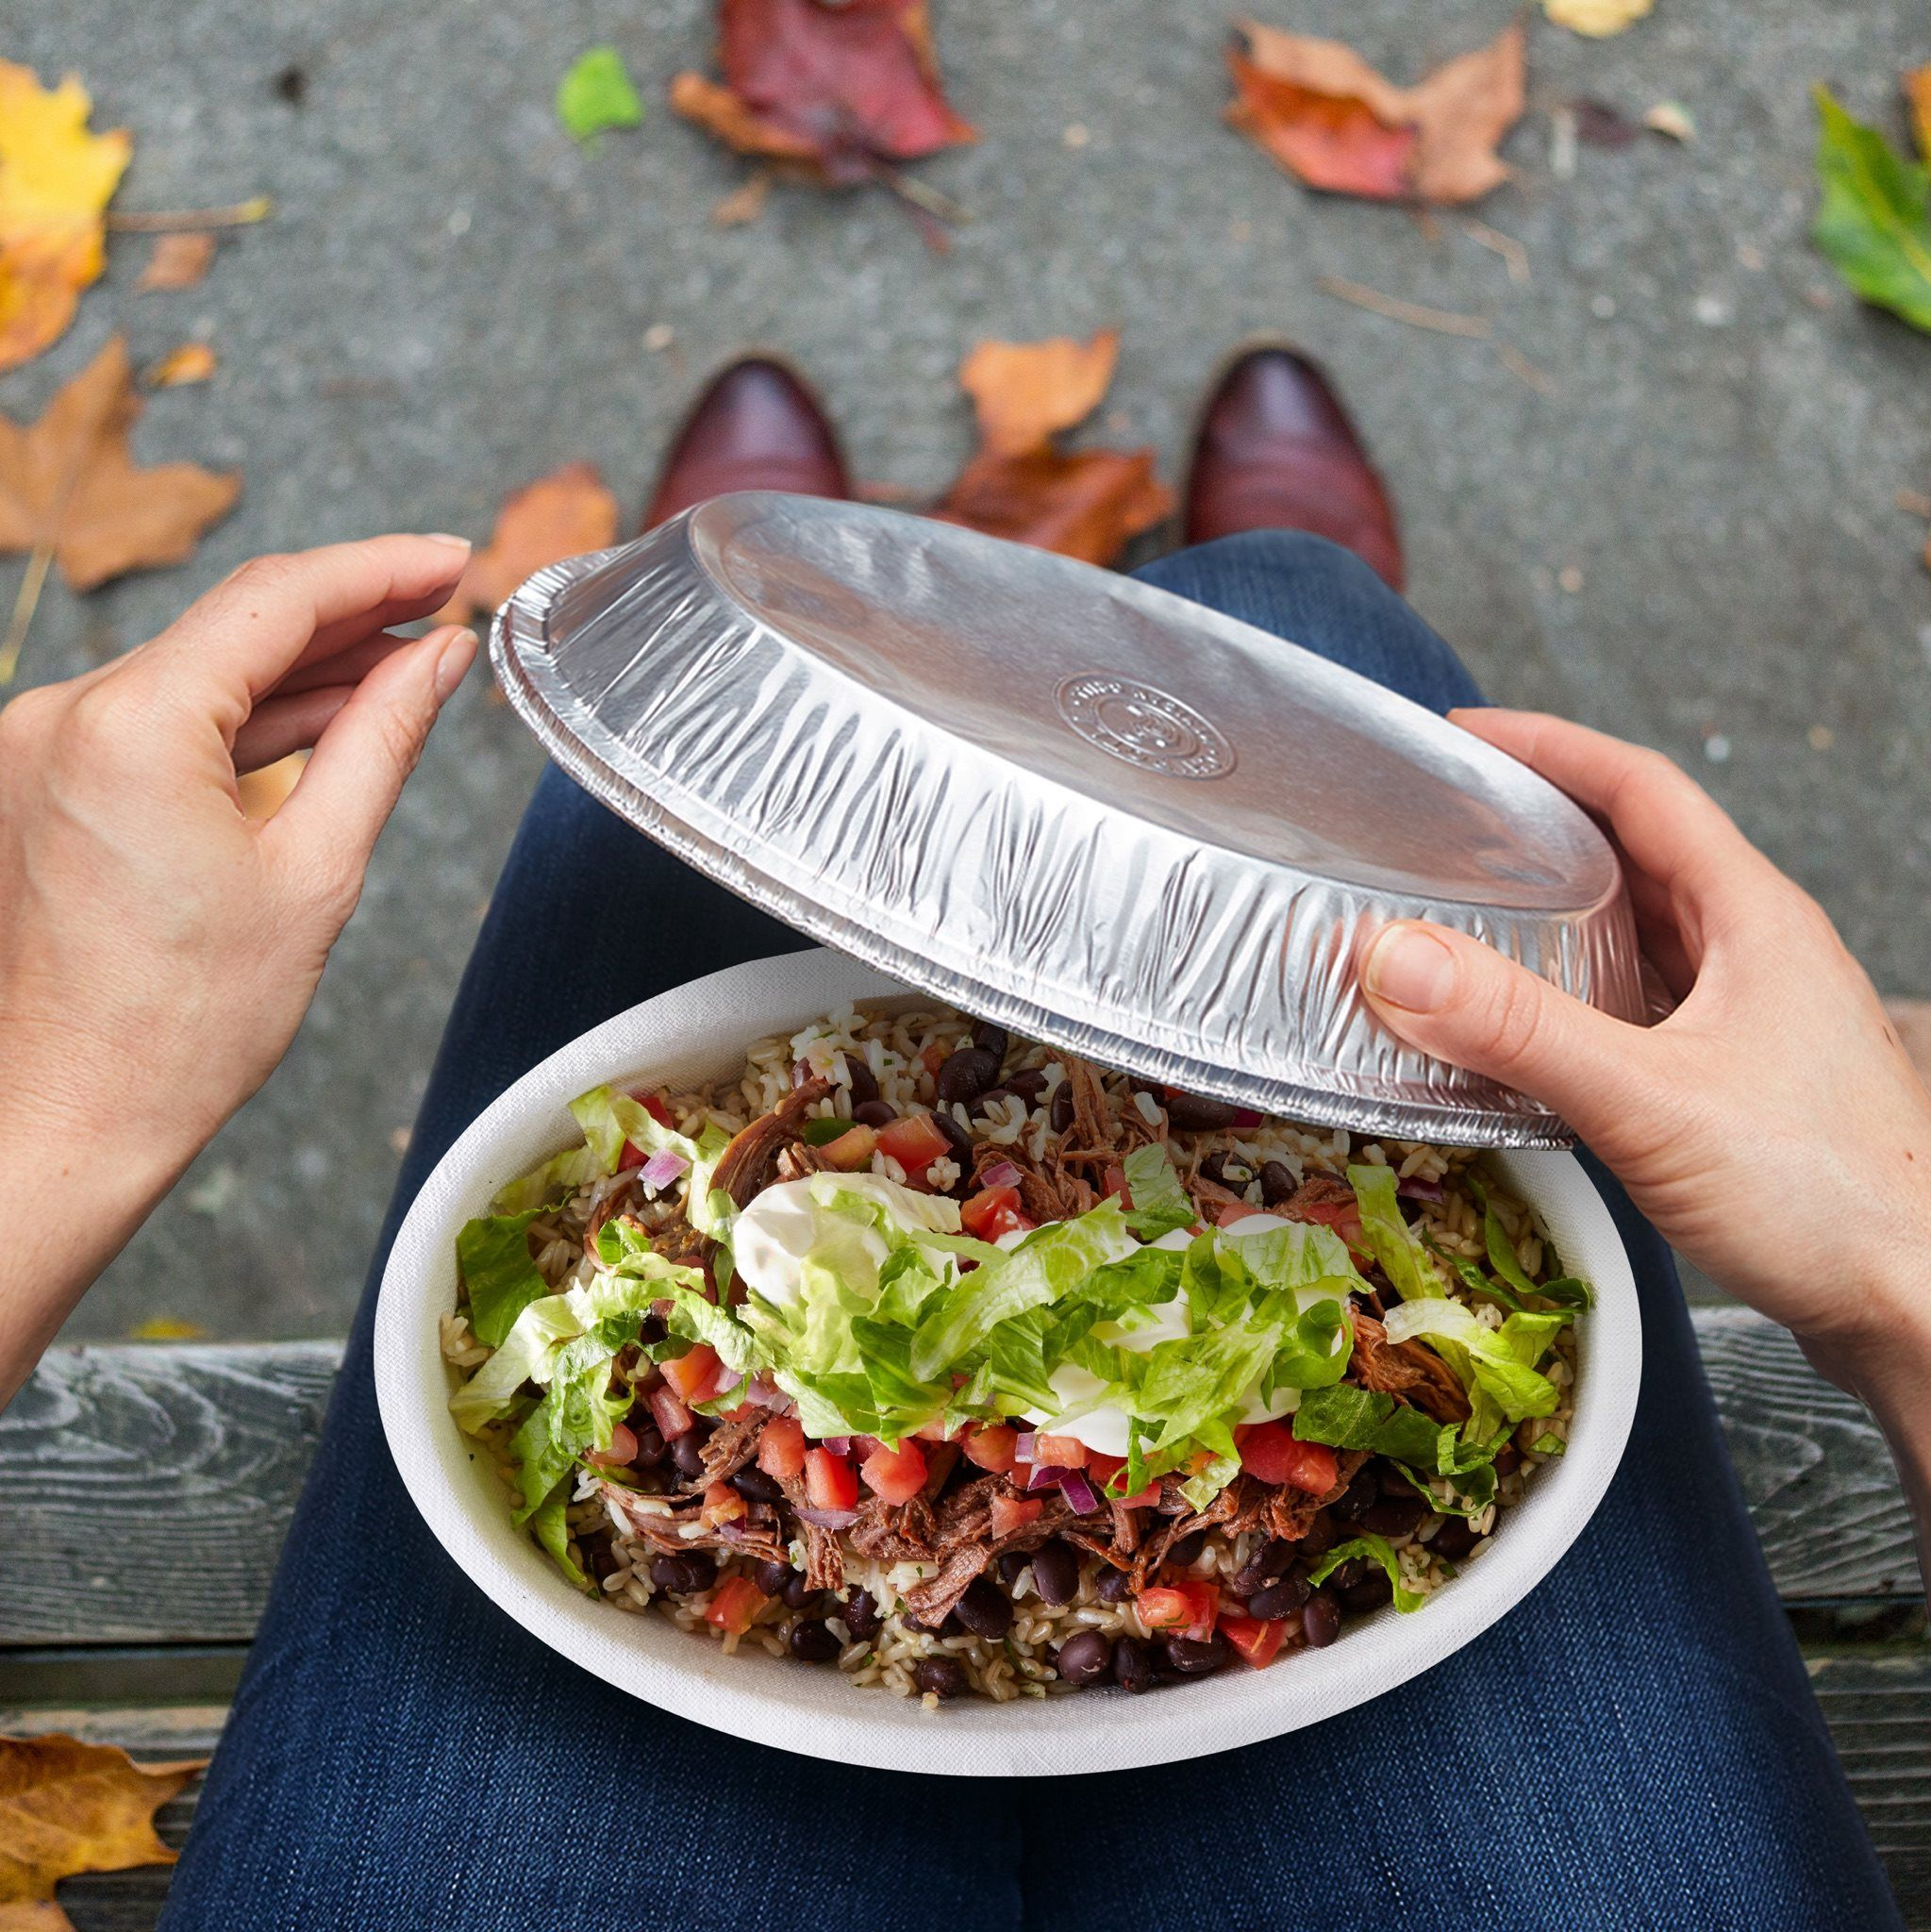 30 Healthy Fast Food Options For When You Re Eating On The Go